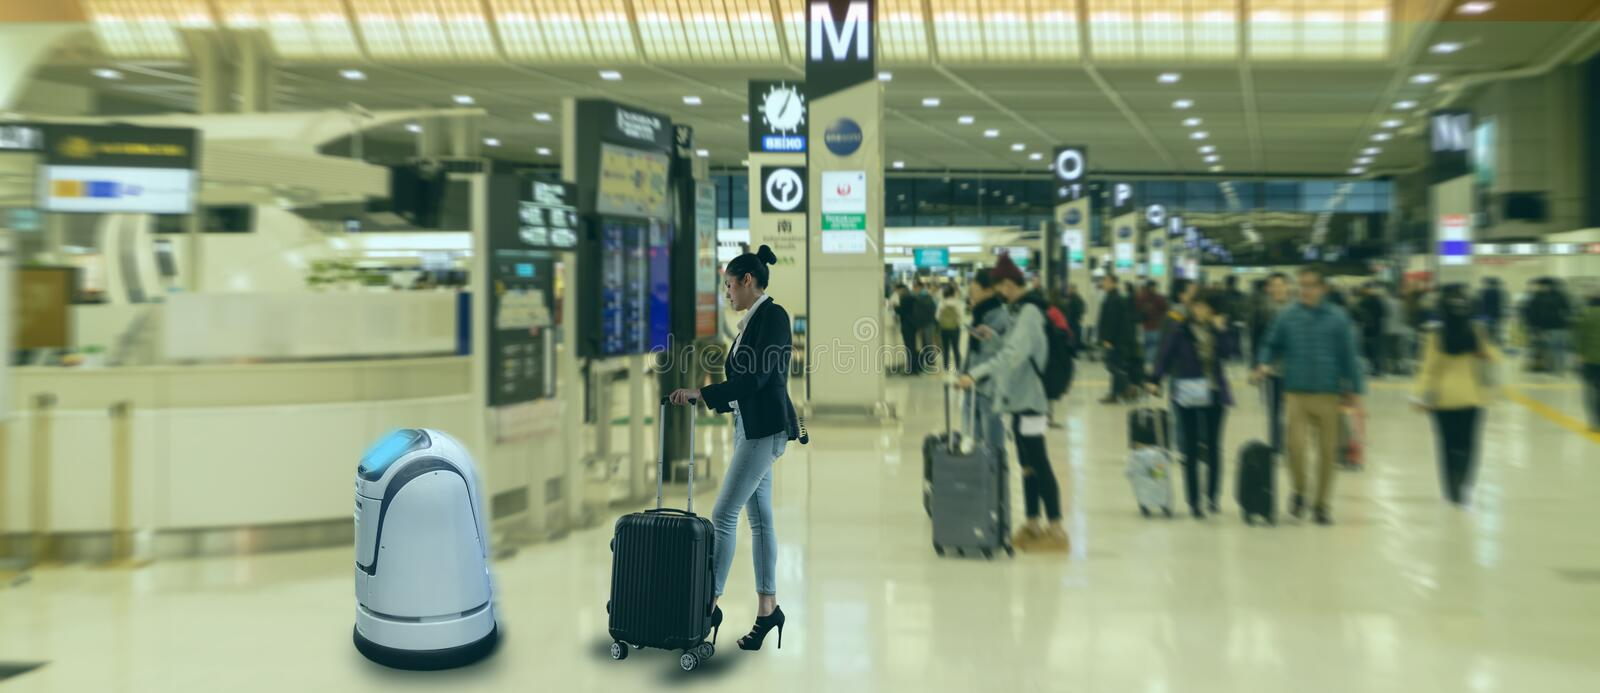 Smart robotic technology concept, The passenger follow a service robot to a counter check in in airport, the robot can help and gi stock photography